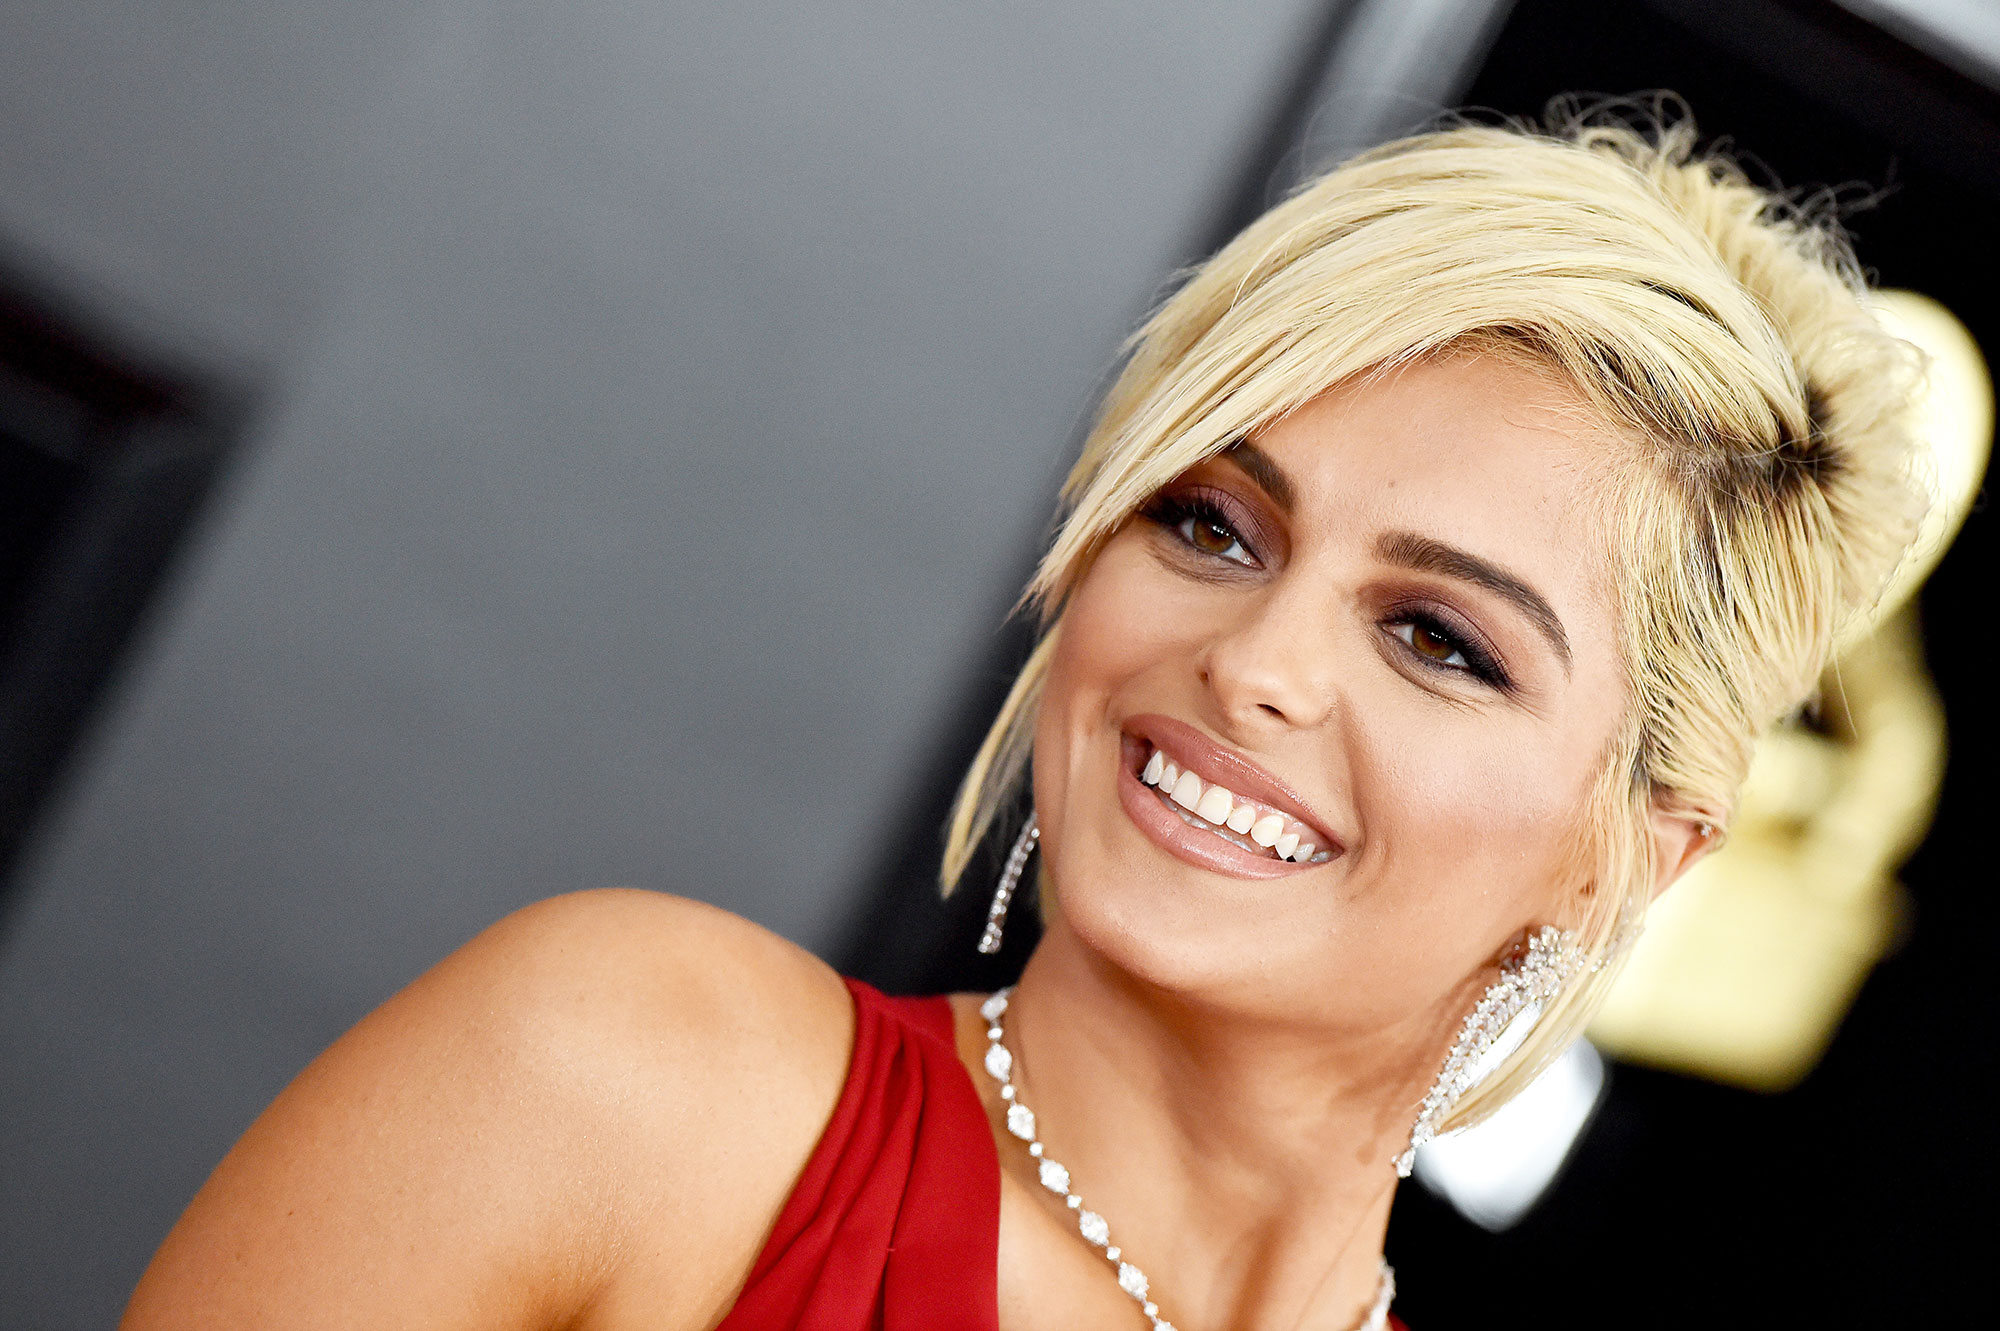 "grammys 2019 Bebe Rexha - A 'do to die for! Stylist Ursula Stephen created a ""gritty half-up style"" for the 'I Got You' singer and the imperfect nature of it makes it super easy to achieve. After prepping hair with TRESemme Thermal Creations Blow Dry Balm from roots to ends and spritzing with TRESemme's Thermal Creations Blow Dry Accelerator Spray , Stephen rough-dried locks using a paddle brush to smooth."